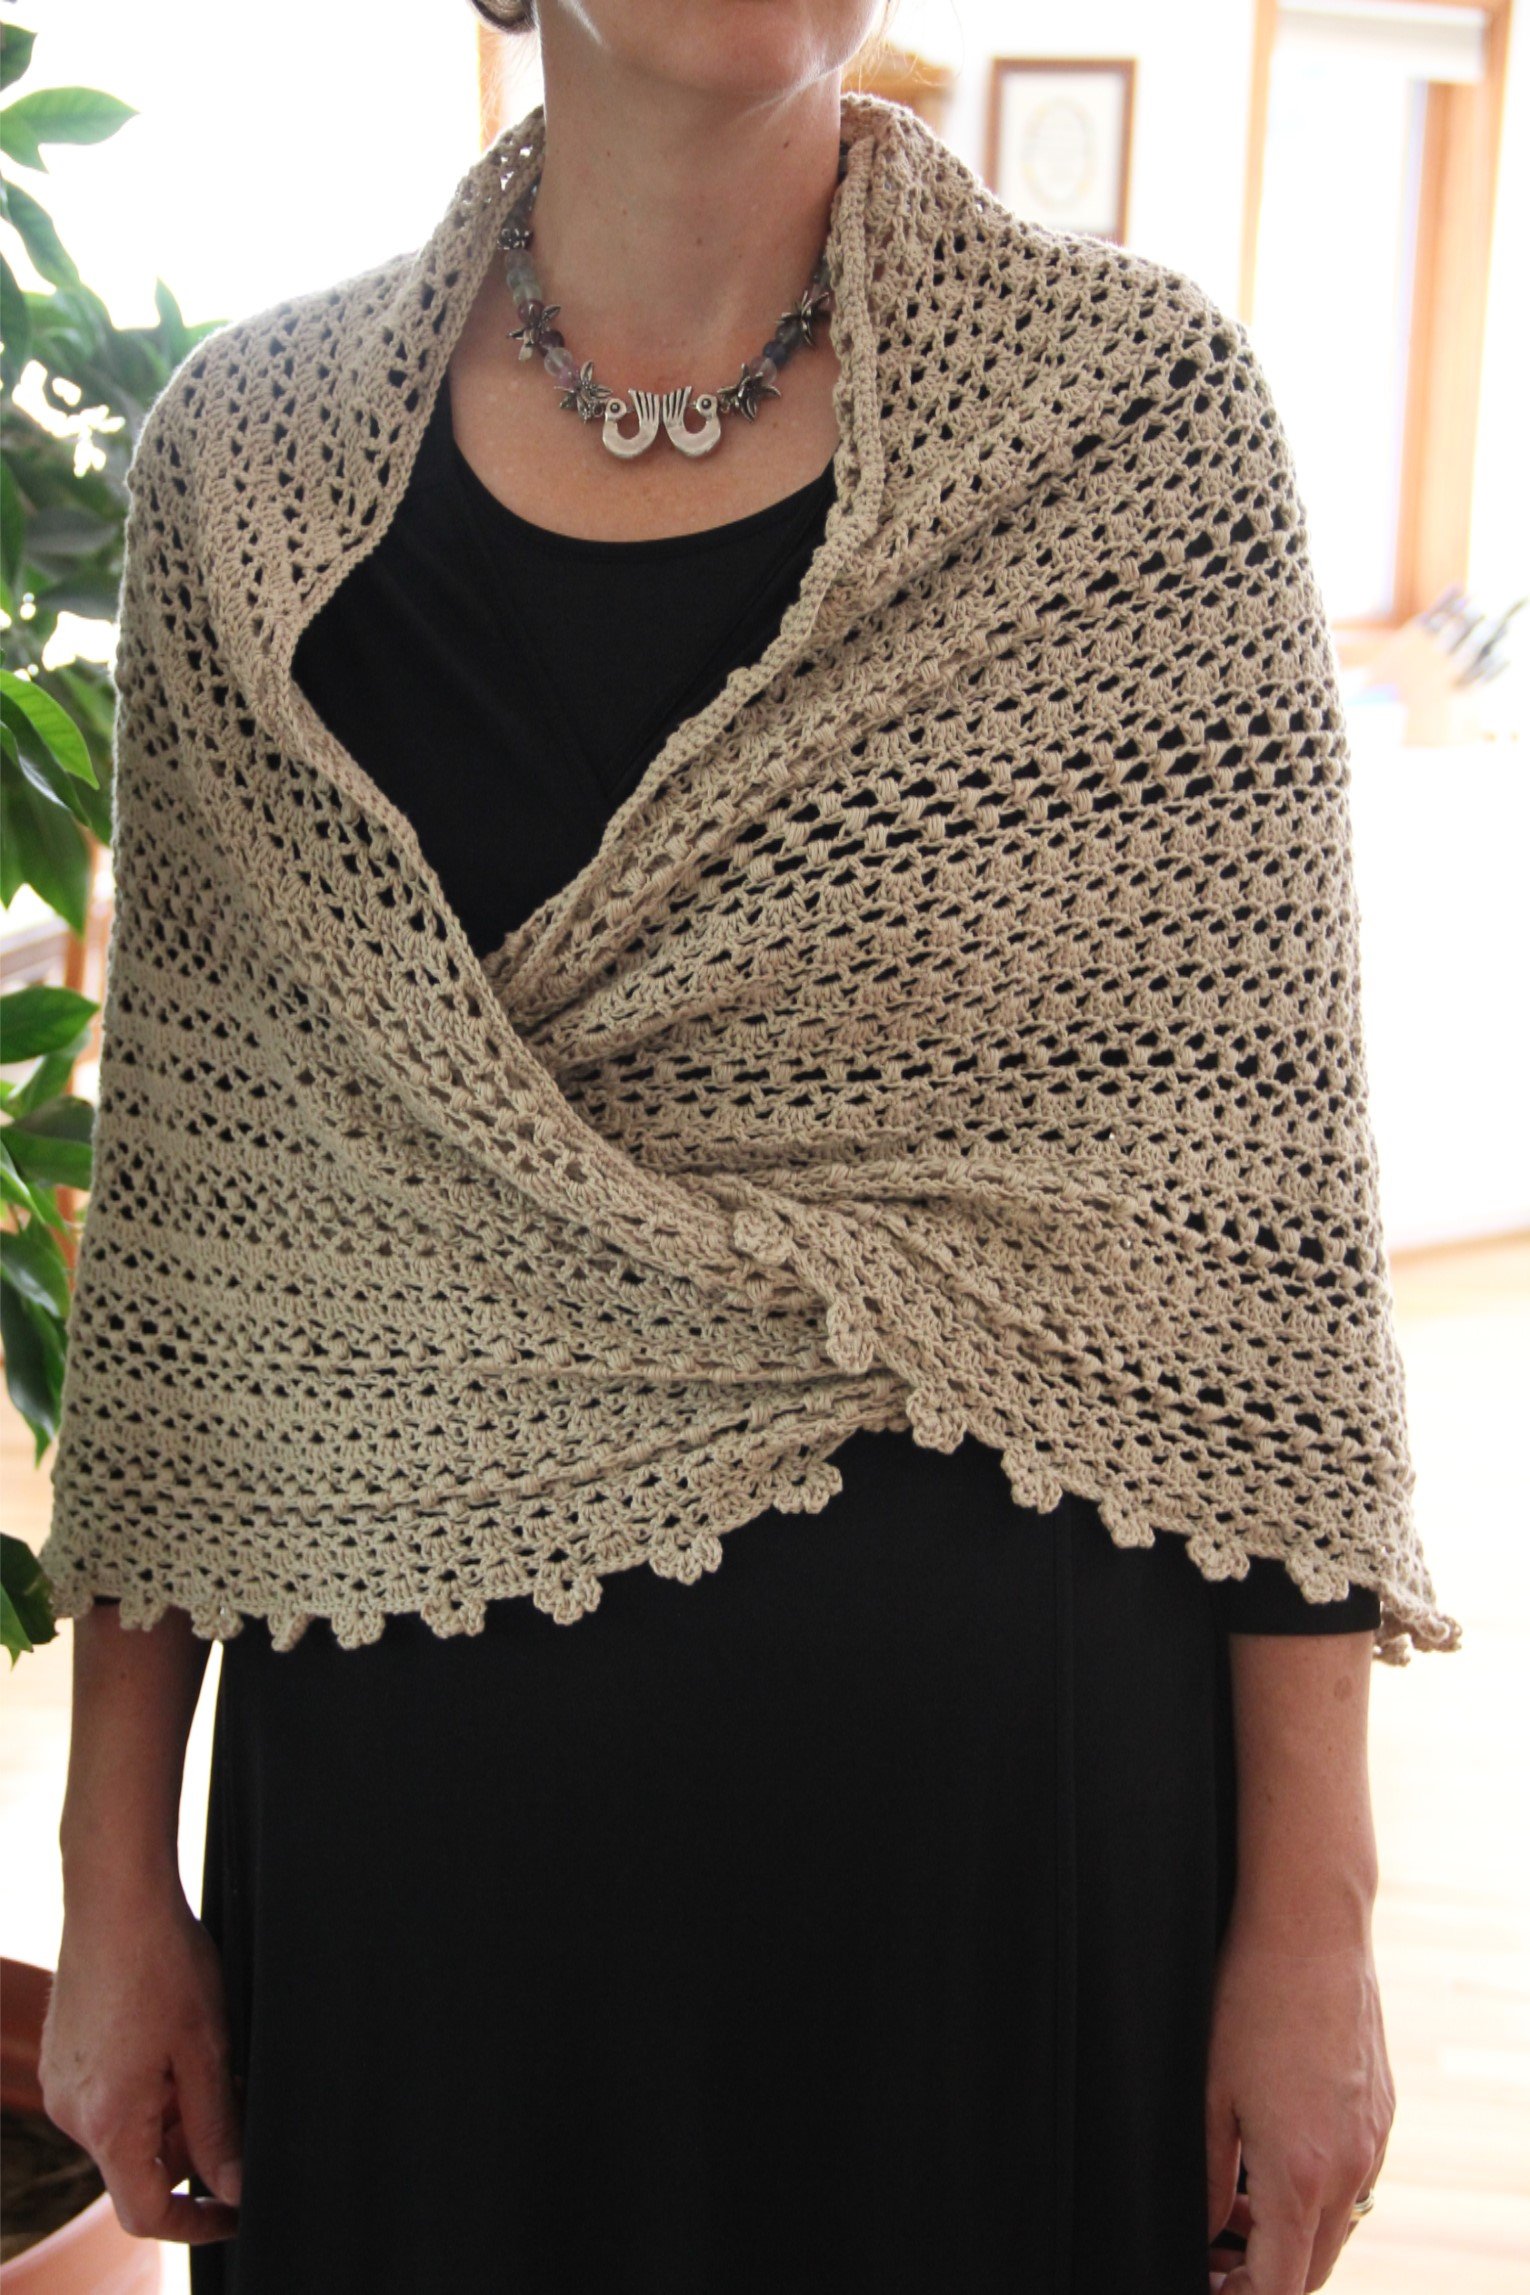 Crochet Patterns Shawl : Charmed Prayer Shawl Crochet Pattern - Hot Girls Wallpaper